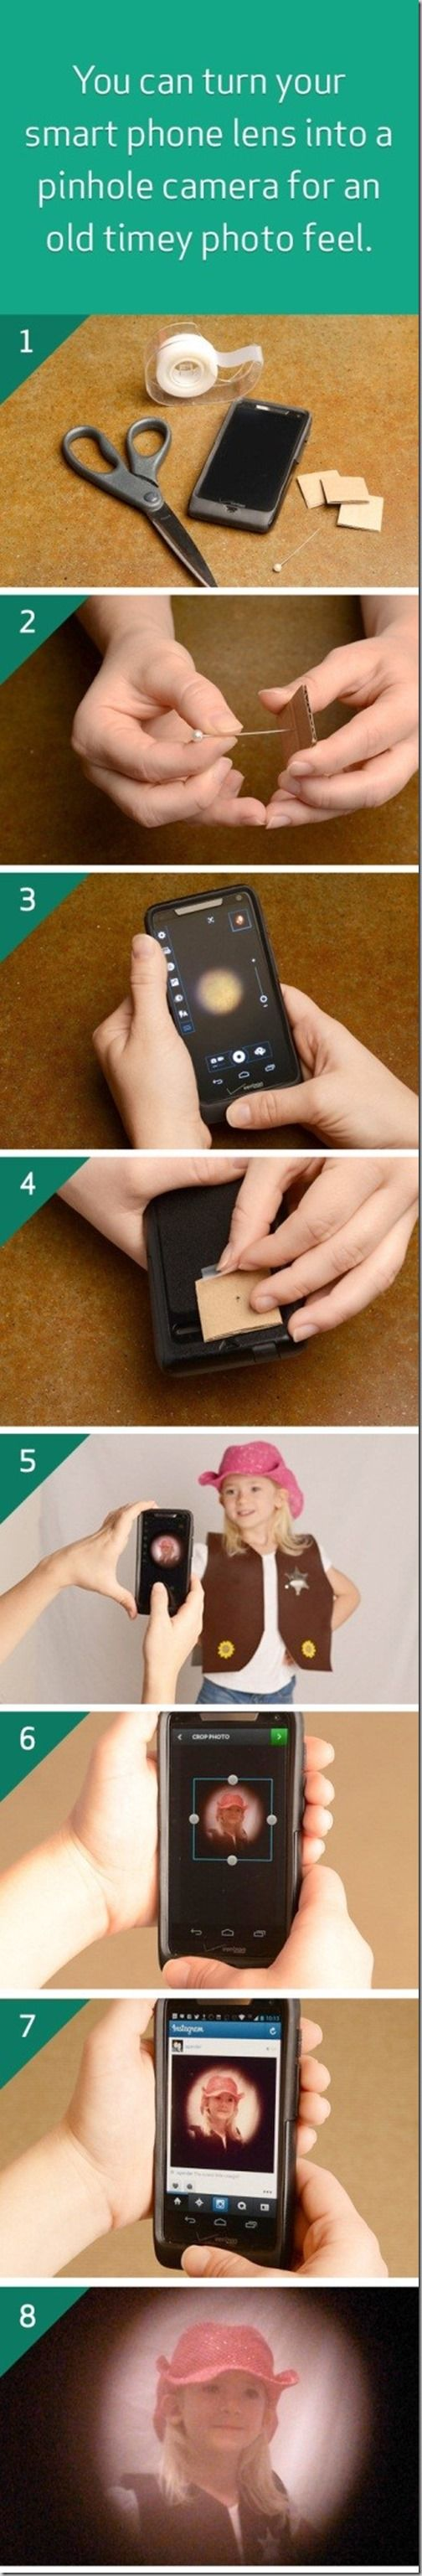 Easy project to turn your smartphone into a pinhole camera for old timey photographs look #VZBuzz @RobynsOnlineWorld.com